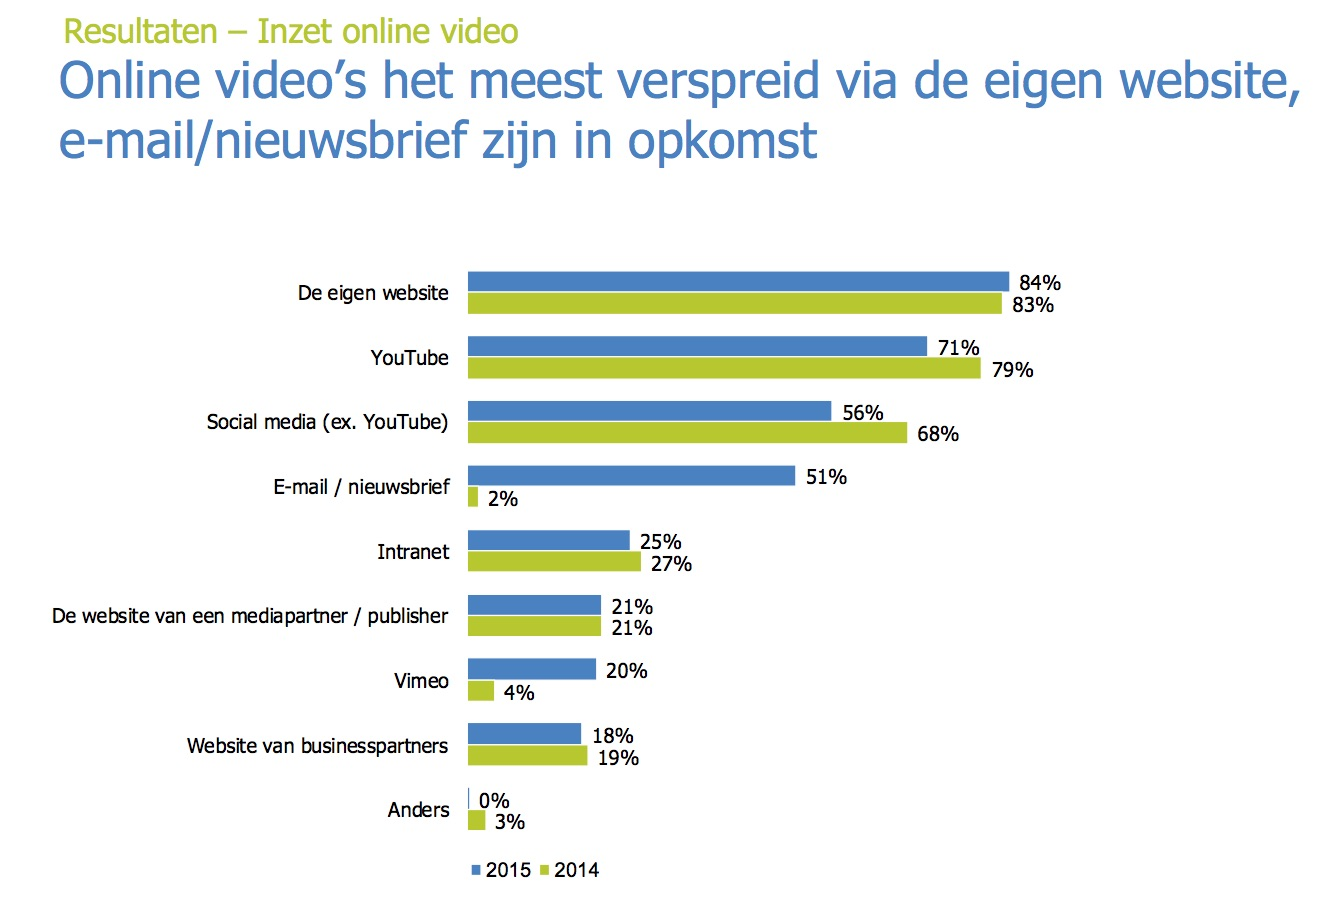 Verspreiding online video